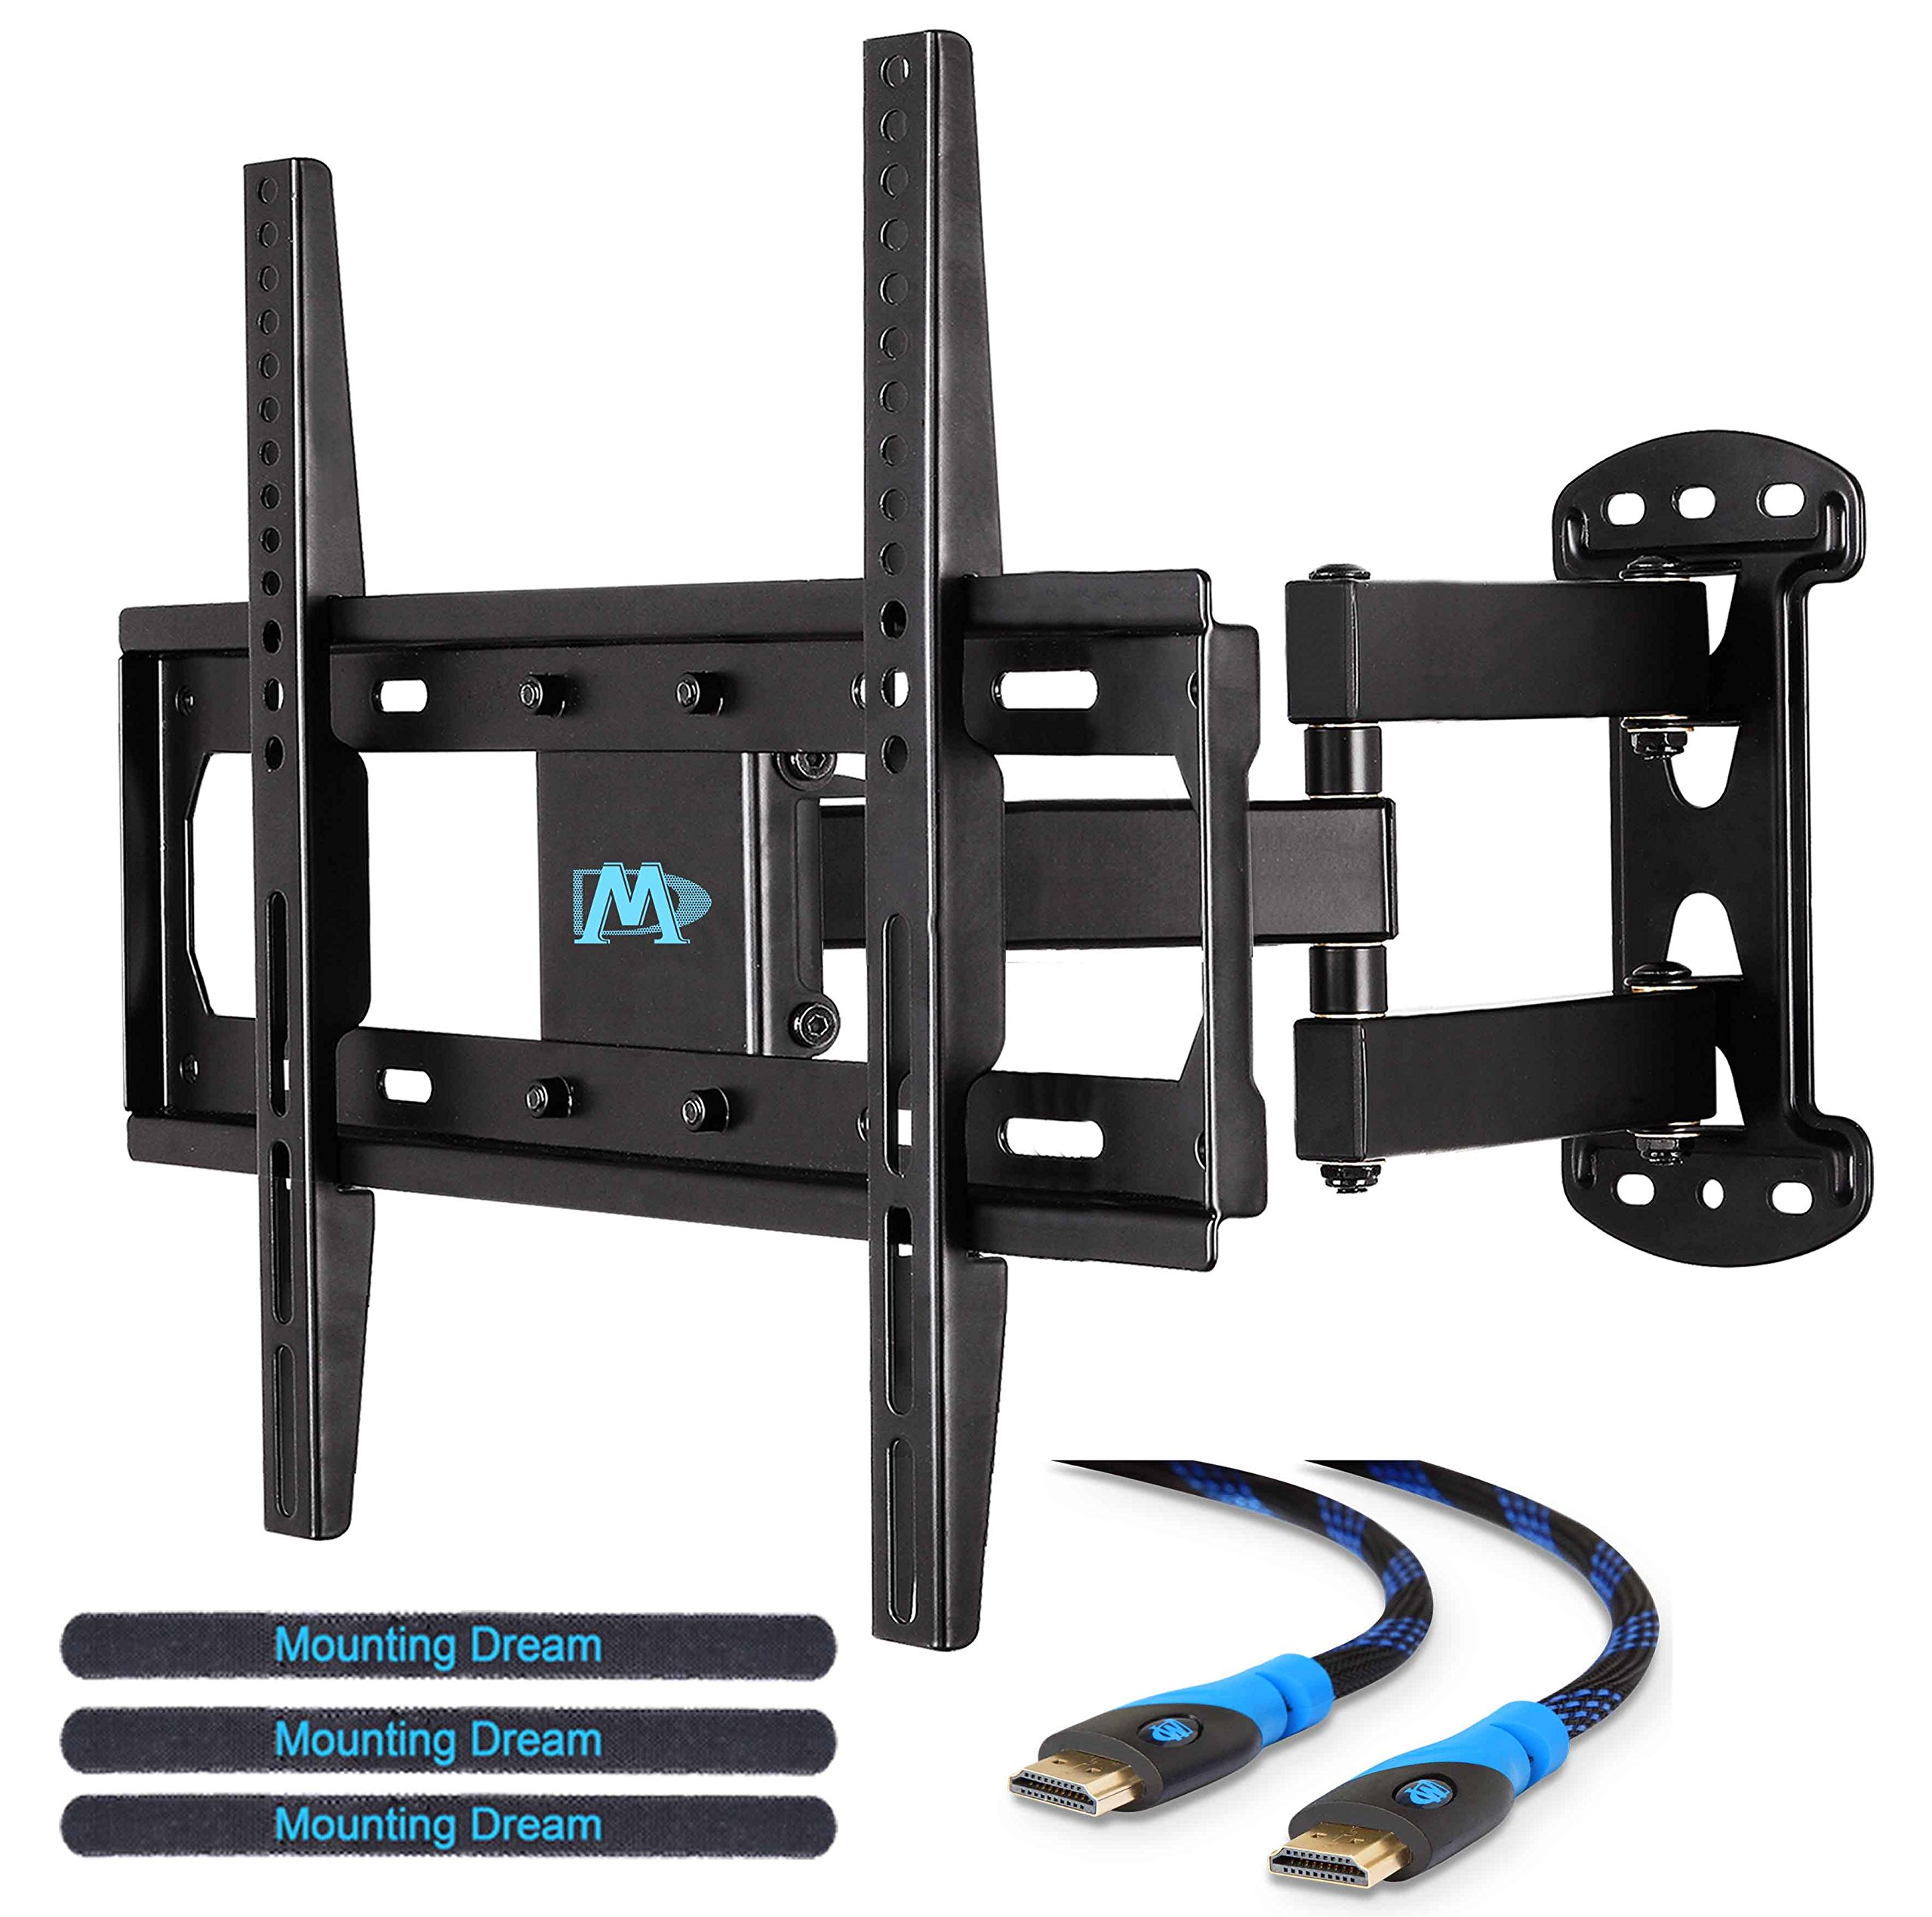 mounting dream md2377 tv wall mount bracket with full motion articulating arm ebay. Black Bedroom Furniture Sets. Home Design Ideas